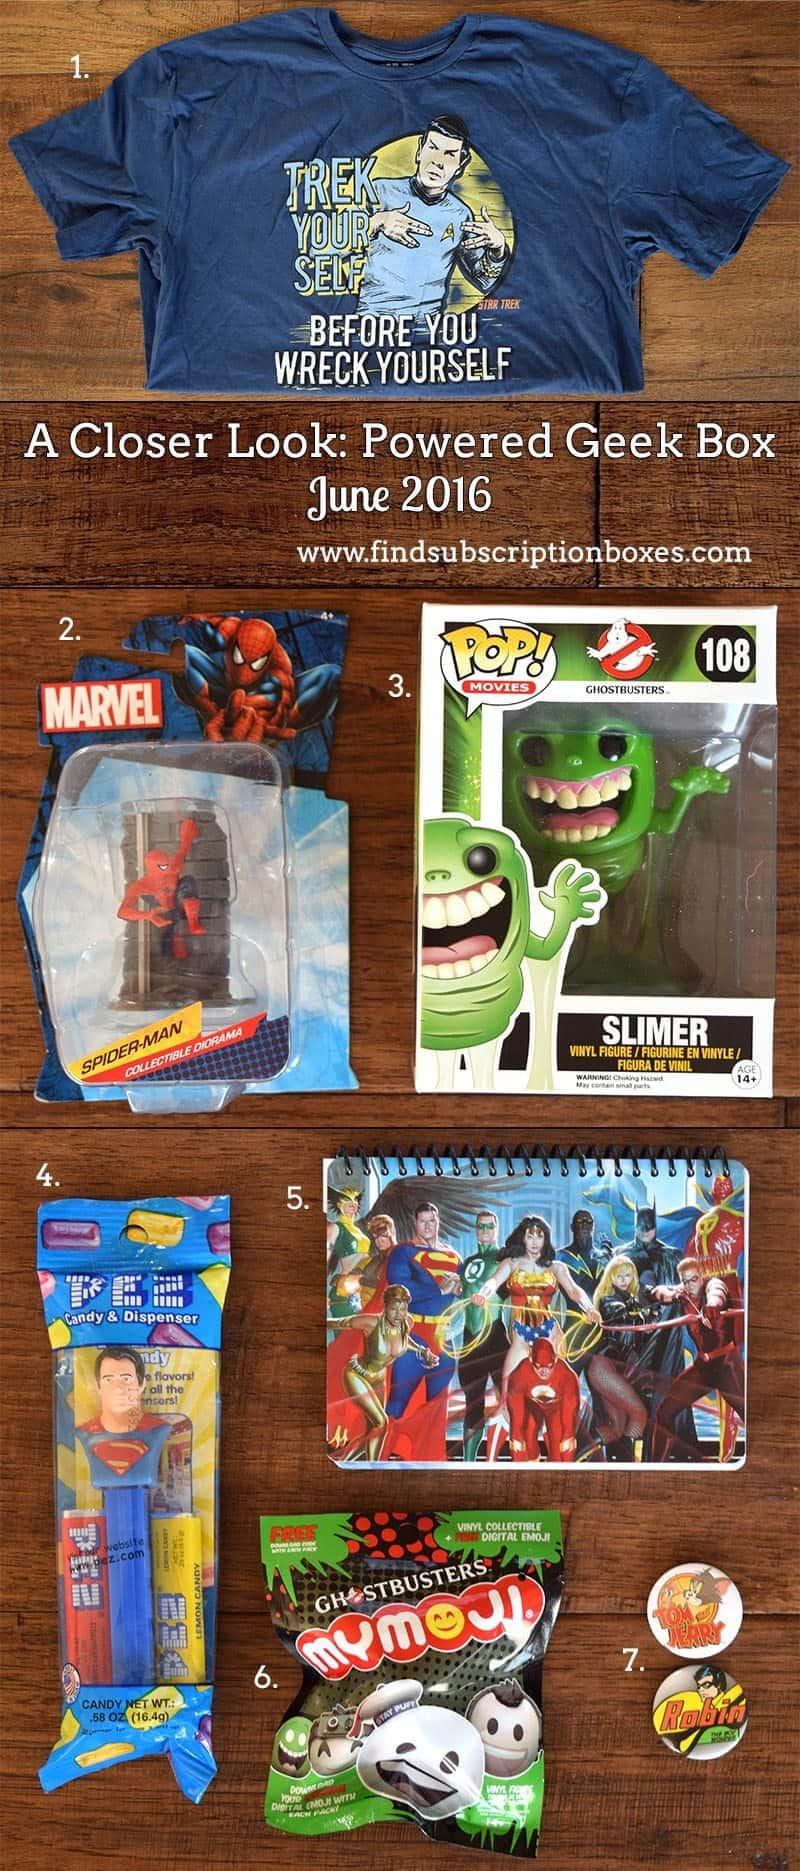 Powered Geek Box June 2016 Box Review - Inside the Box